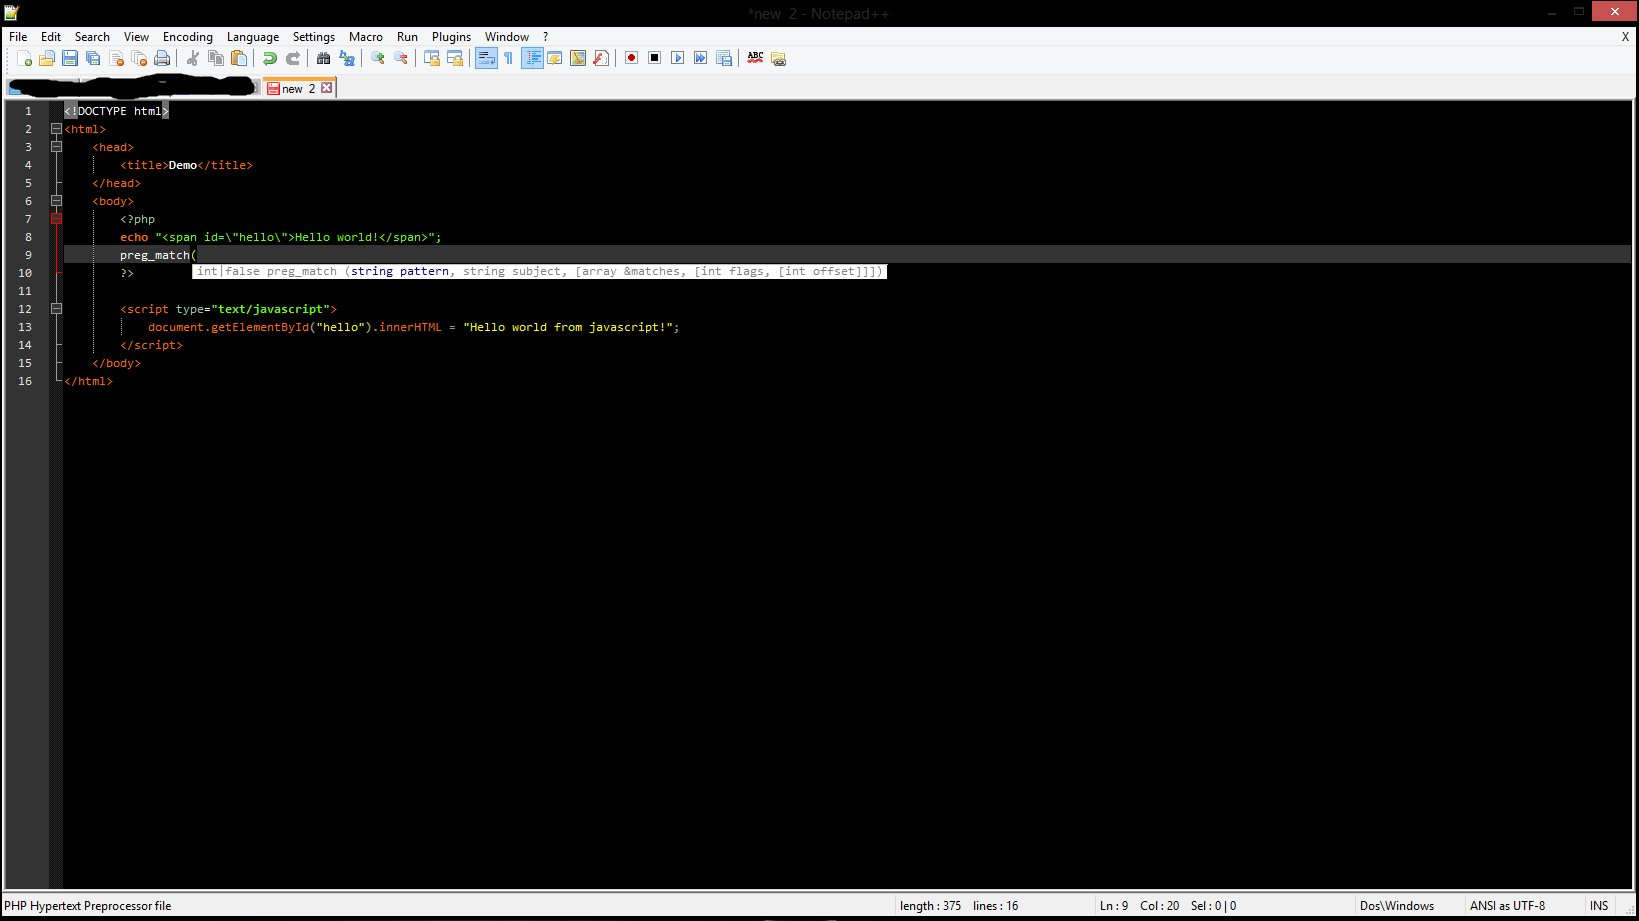 Notepad++ document demonstrating highlighting and code-hinting